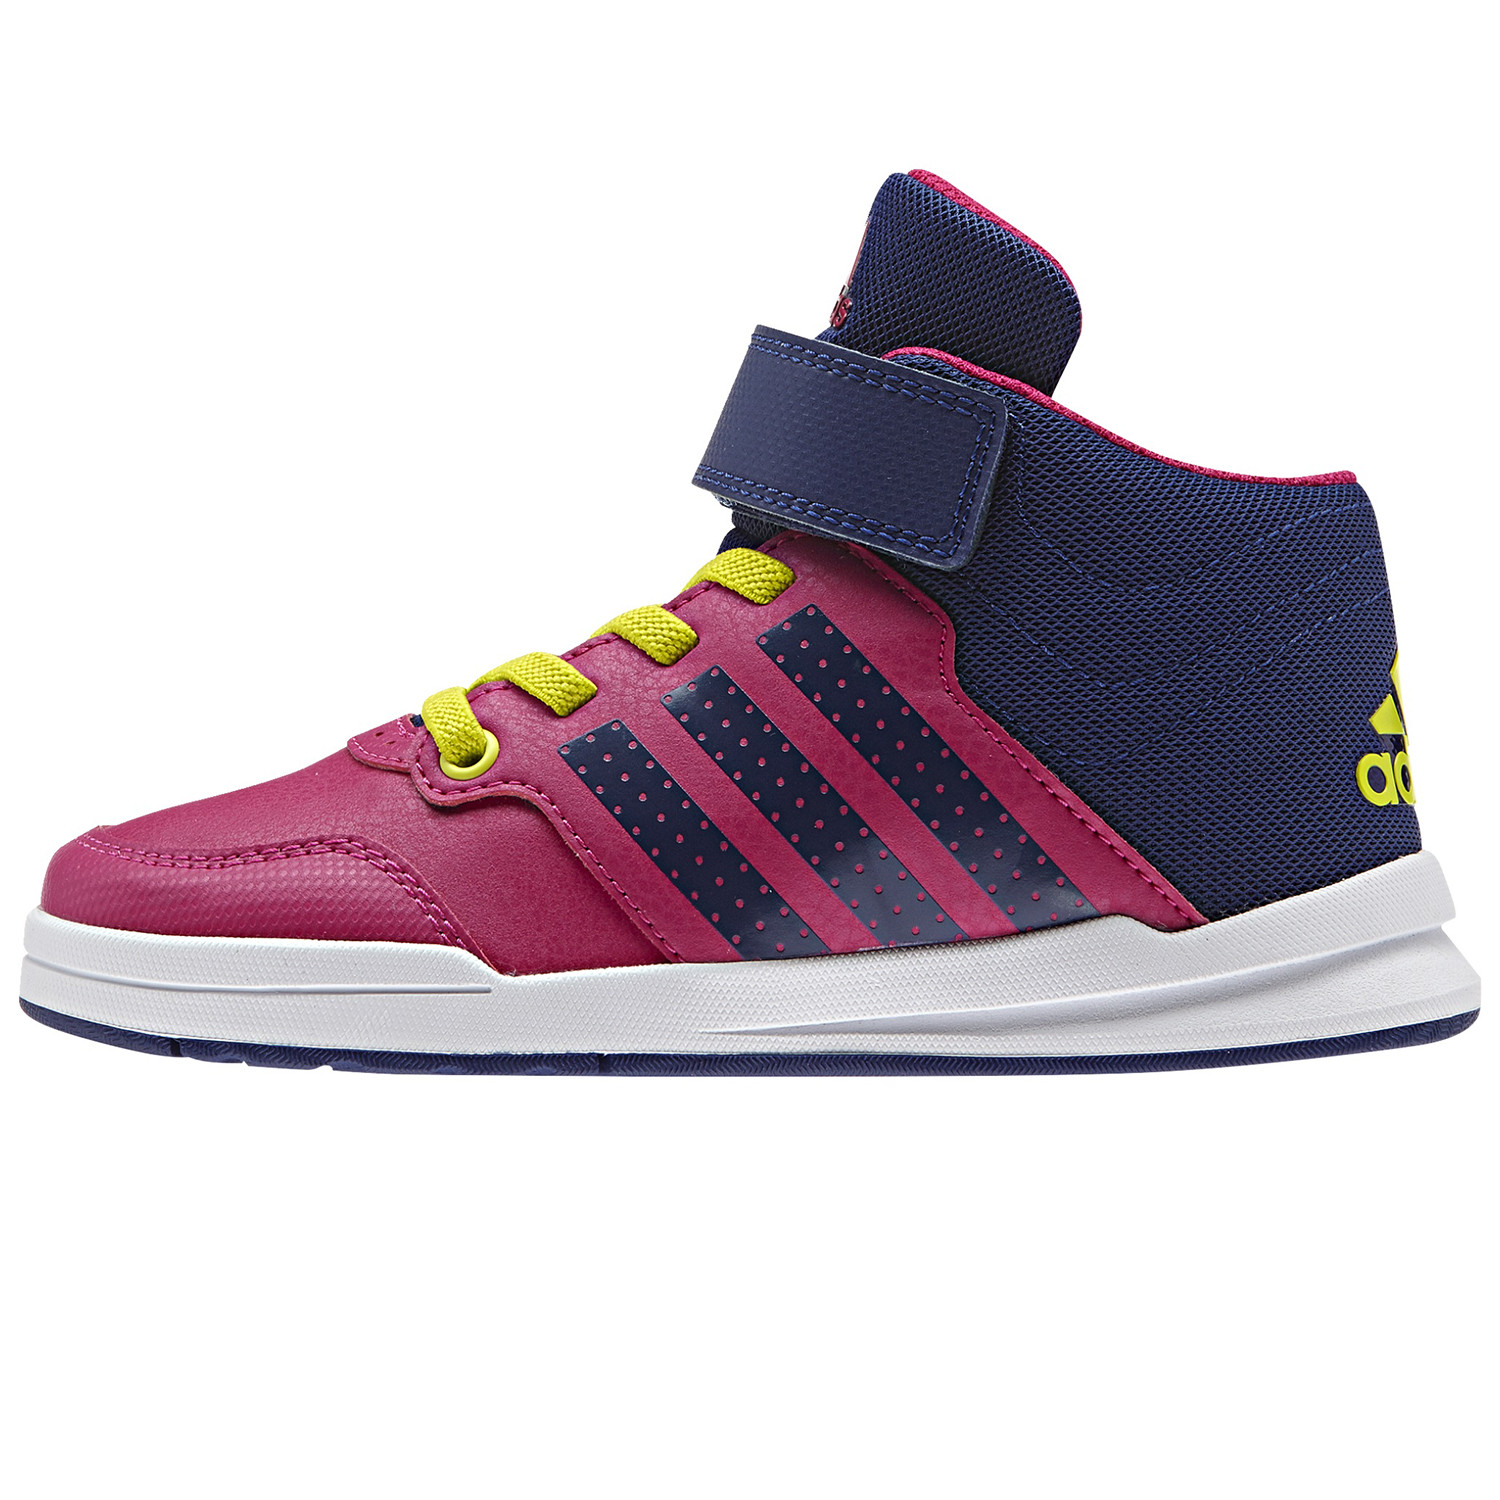 Jan Bs 2 Mid Chaussure Fille ADIDAS ROSE pas cher - Baskets ... f7a428493185